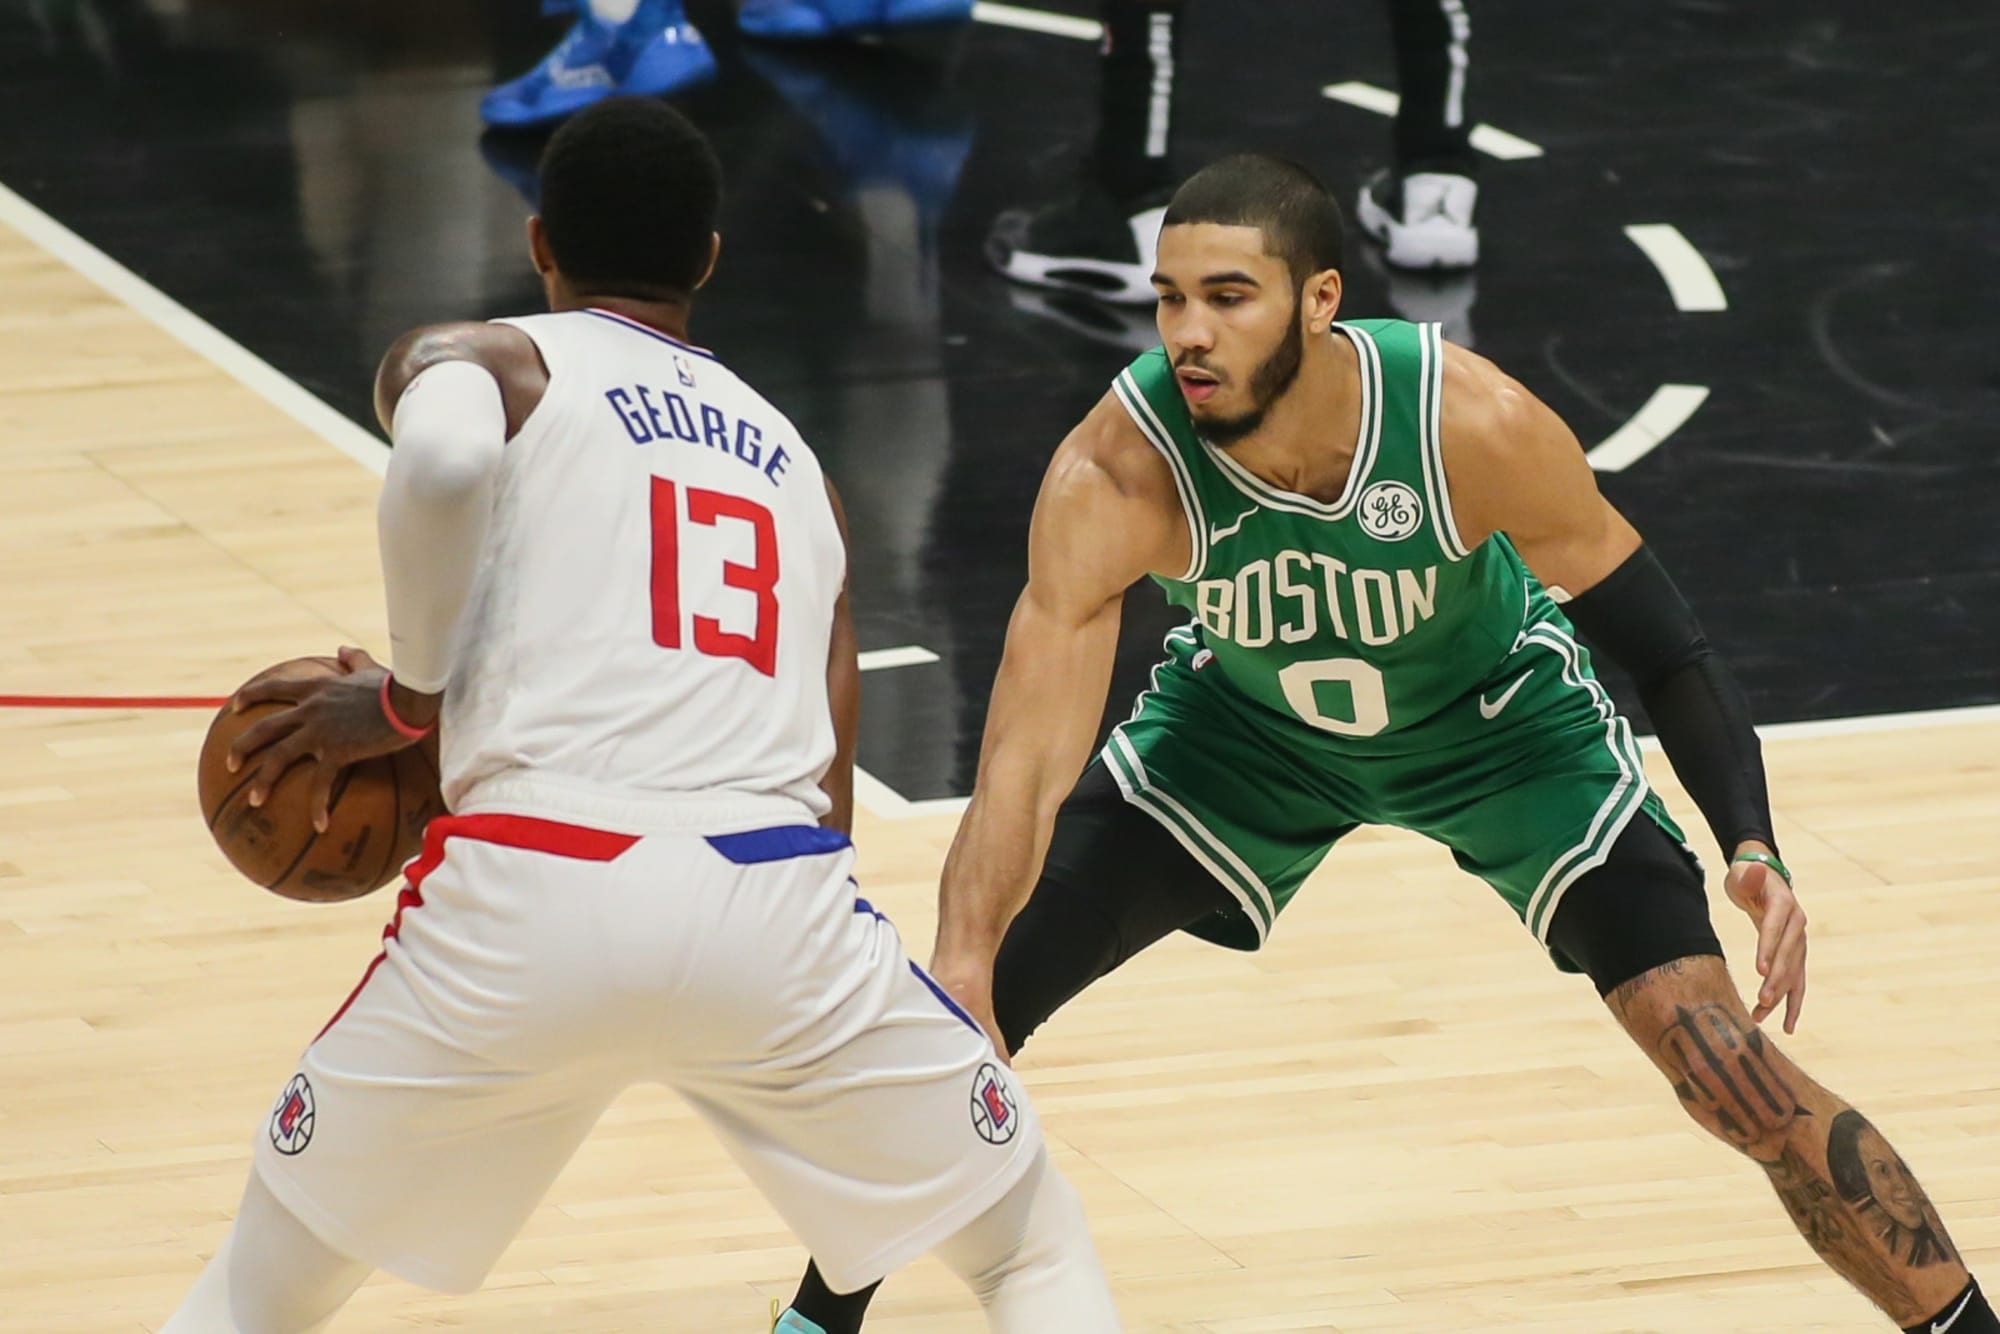 Clippers' Paul George, Celtics' Jayson Tatum Named Players of the Week